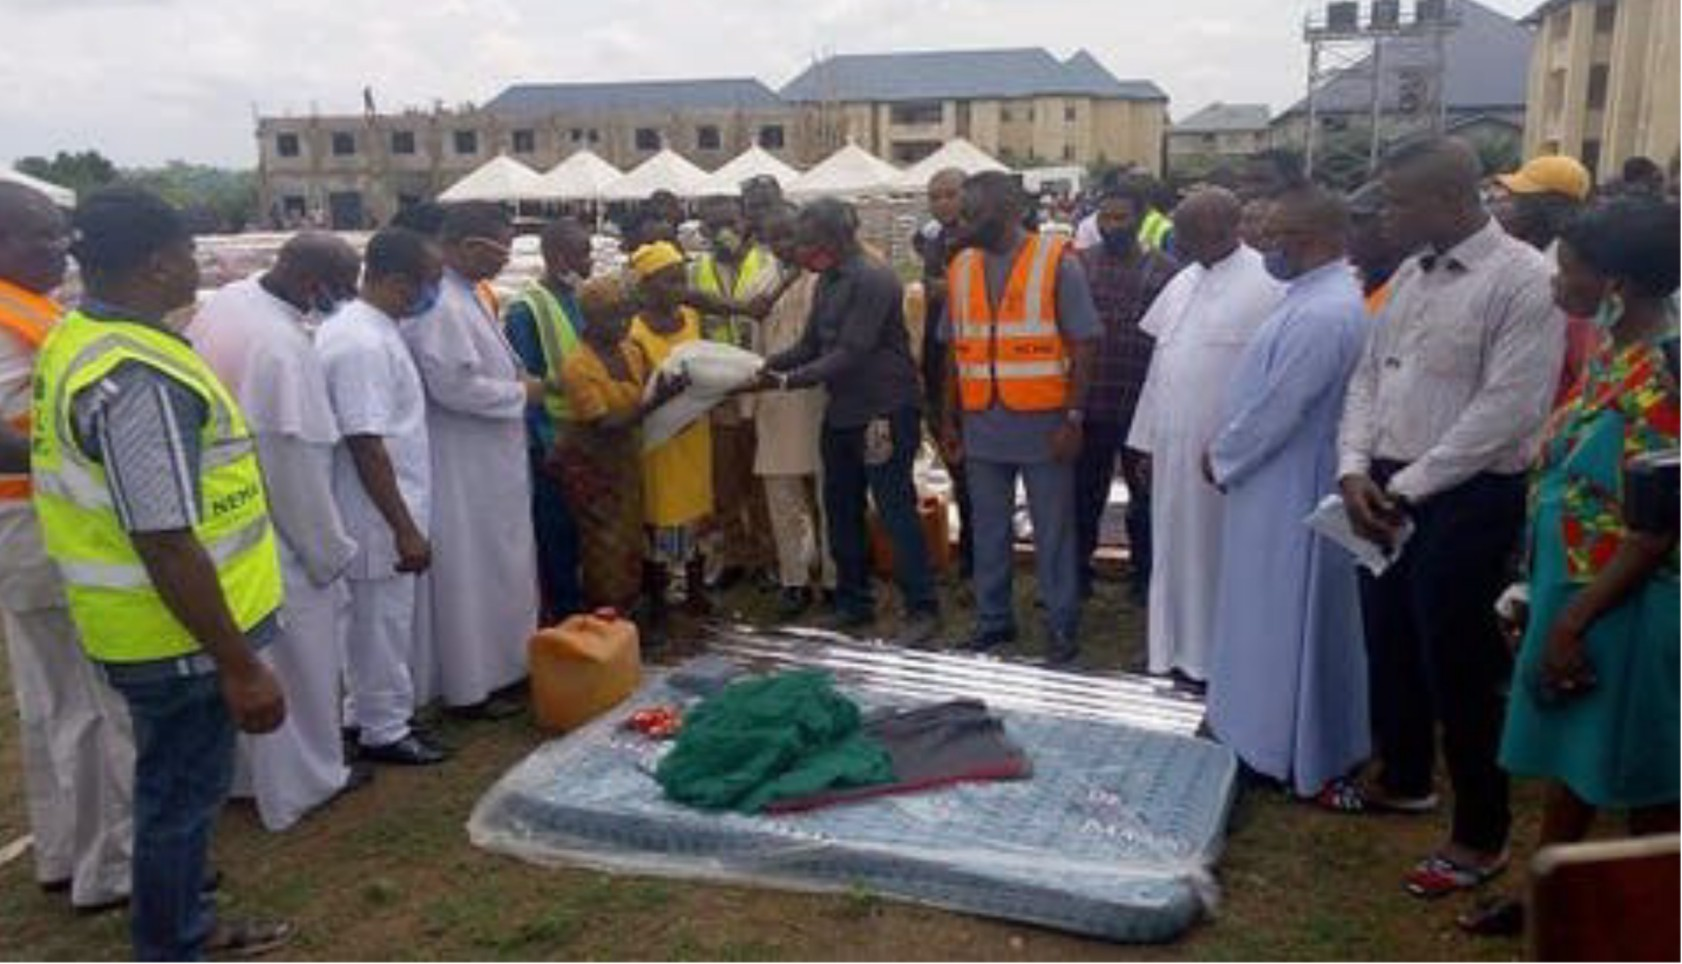 FG distributes relief materials worth millions of naira to victims of communal clashes in Ebonyi